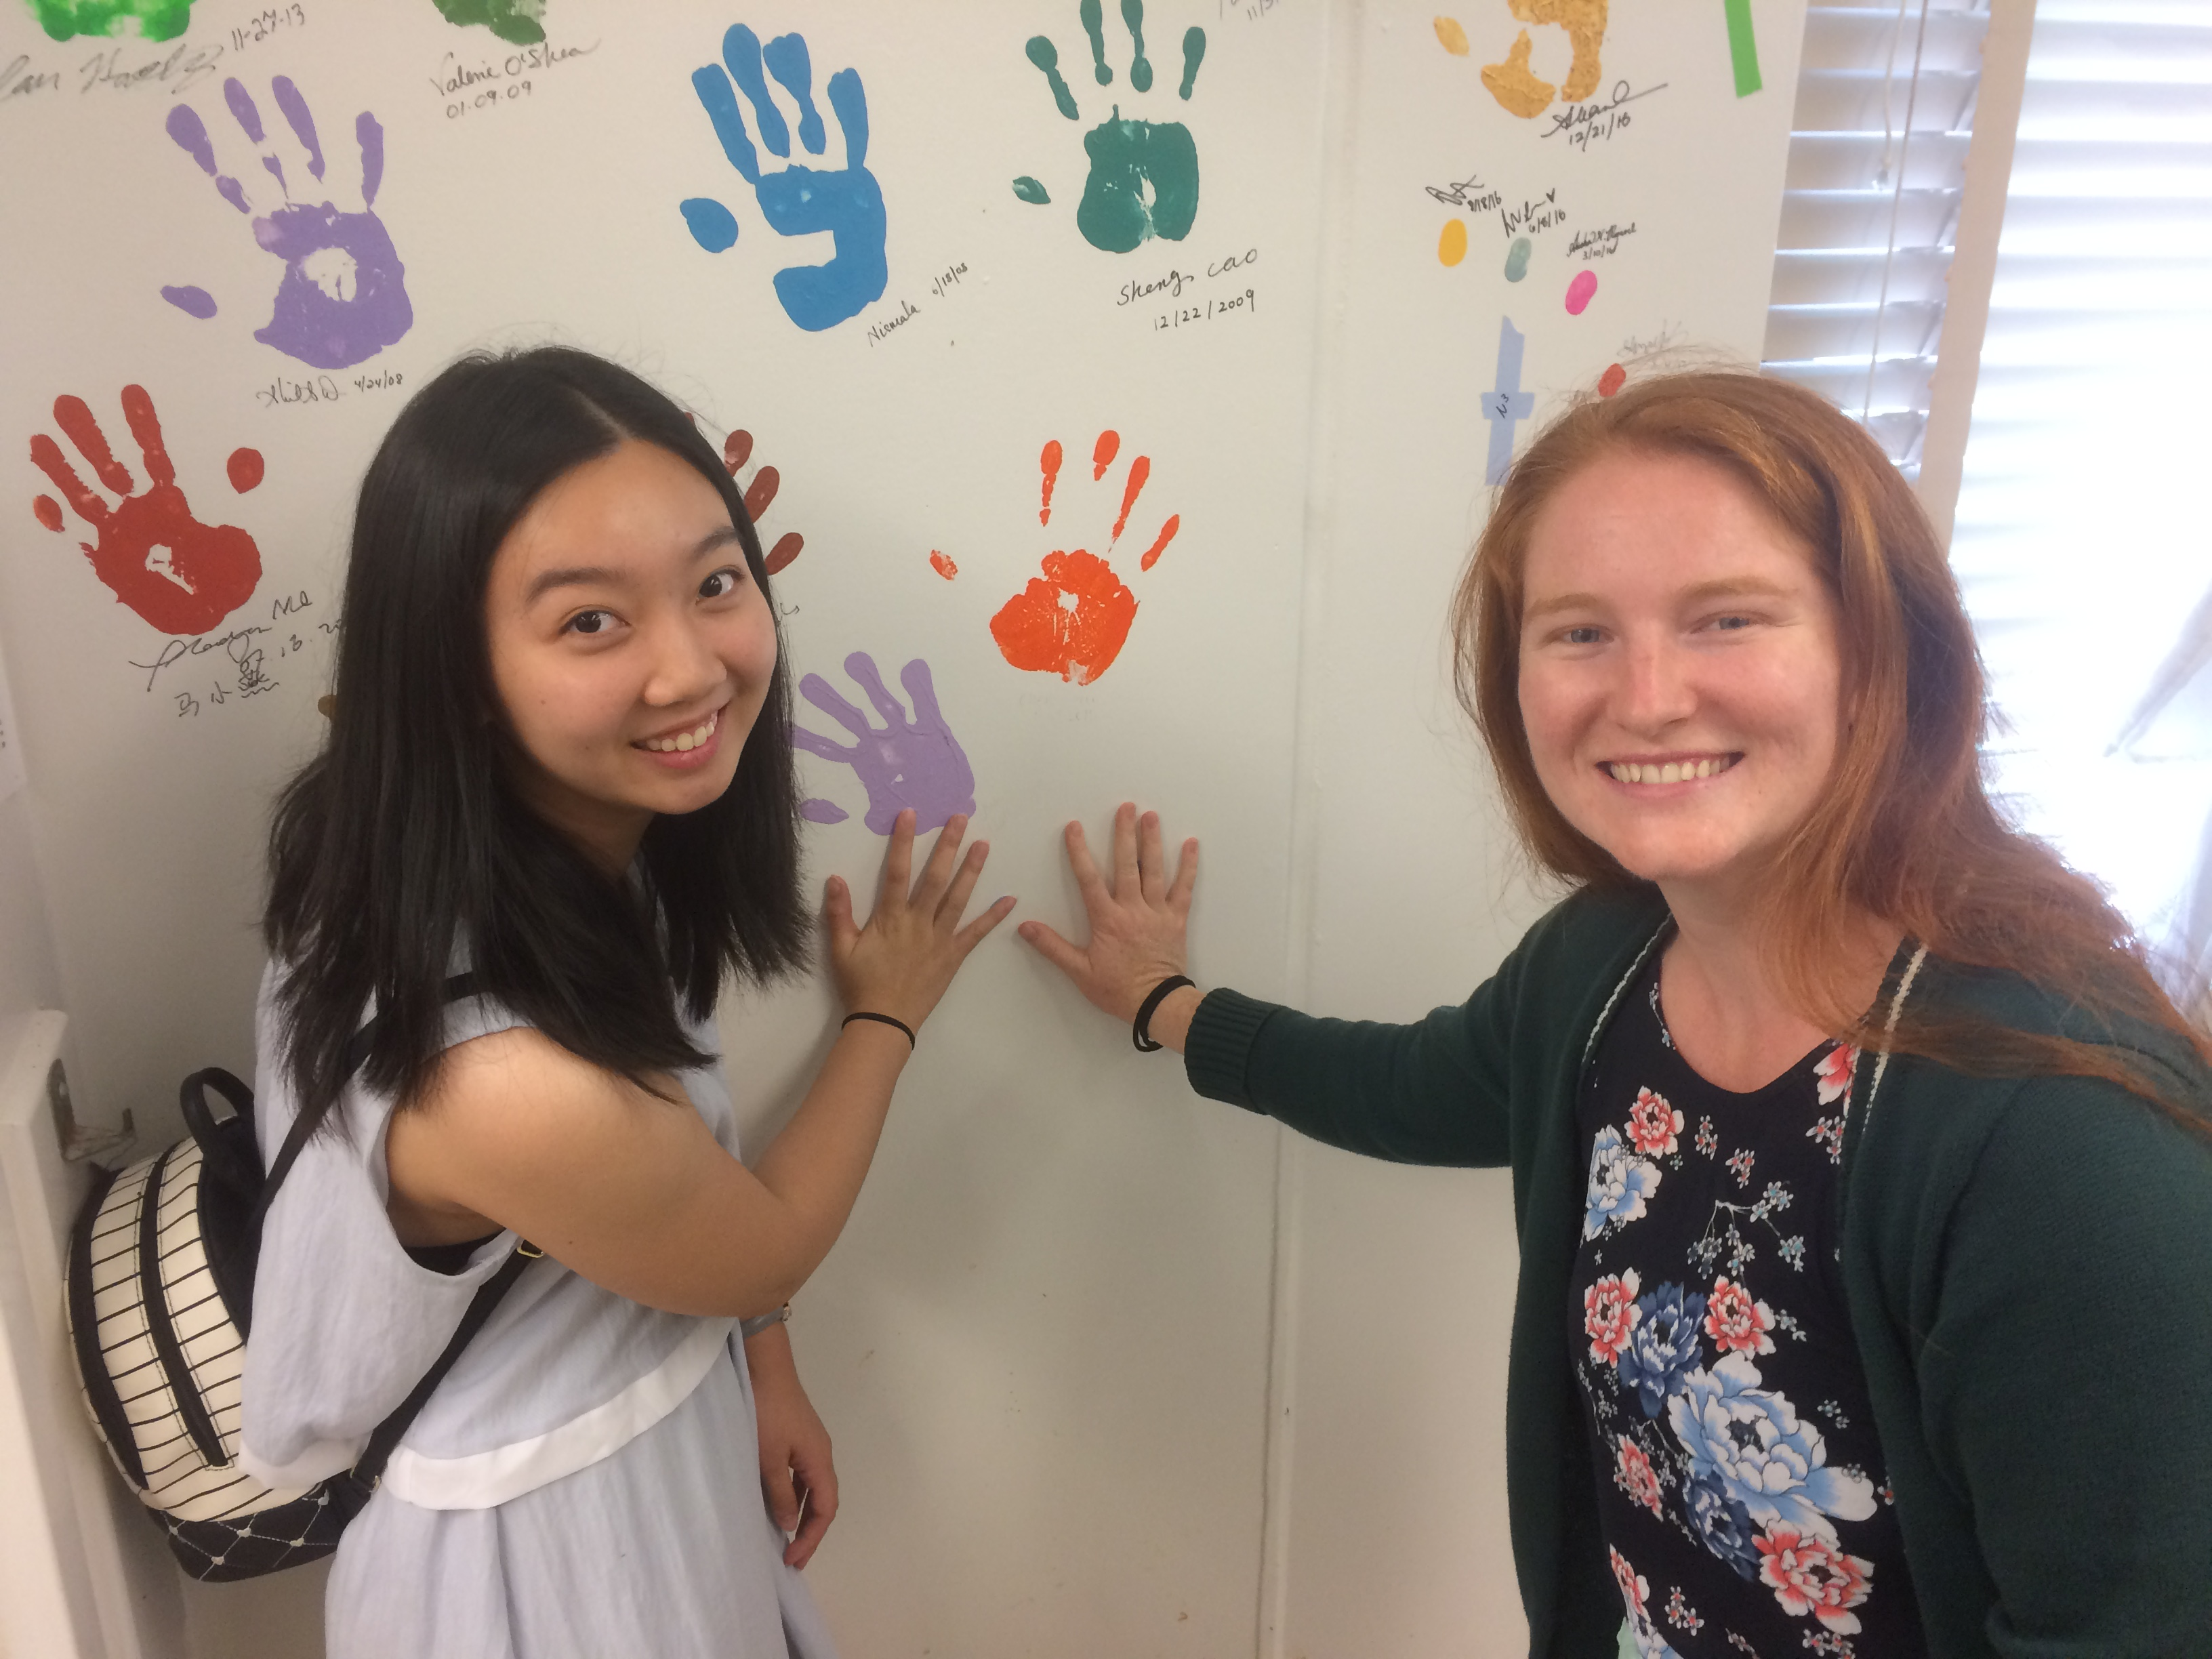 Beili and Kori say goodbye as Beili's REU research through the ACS Project SEED Program comes to a close.